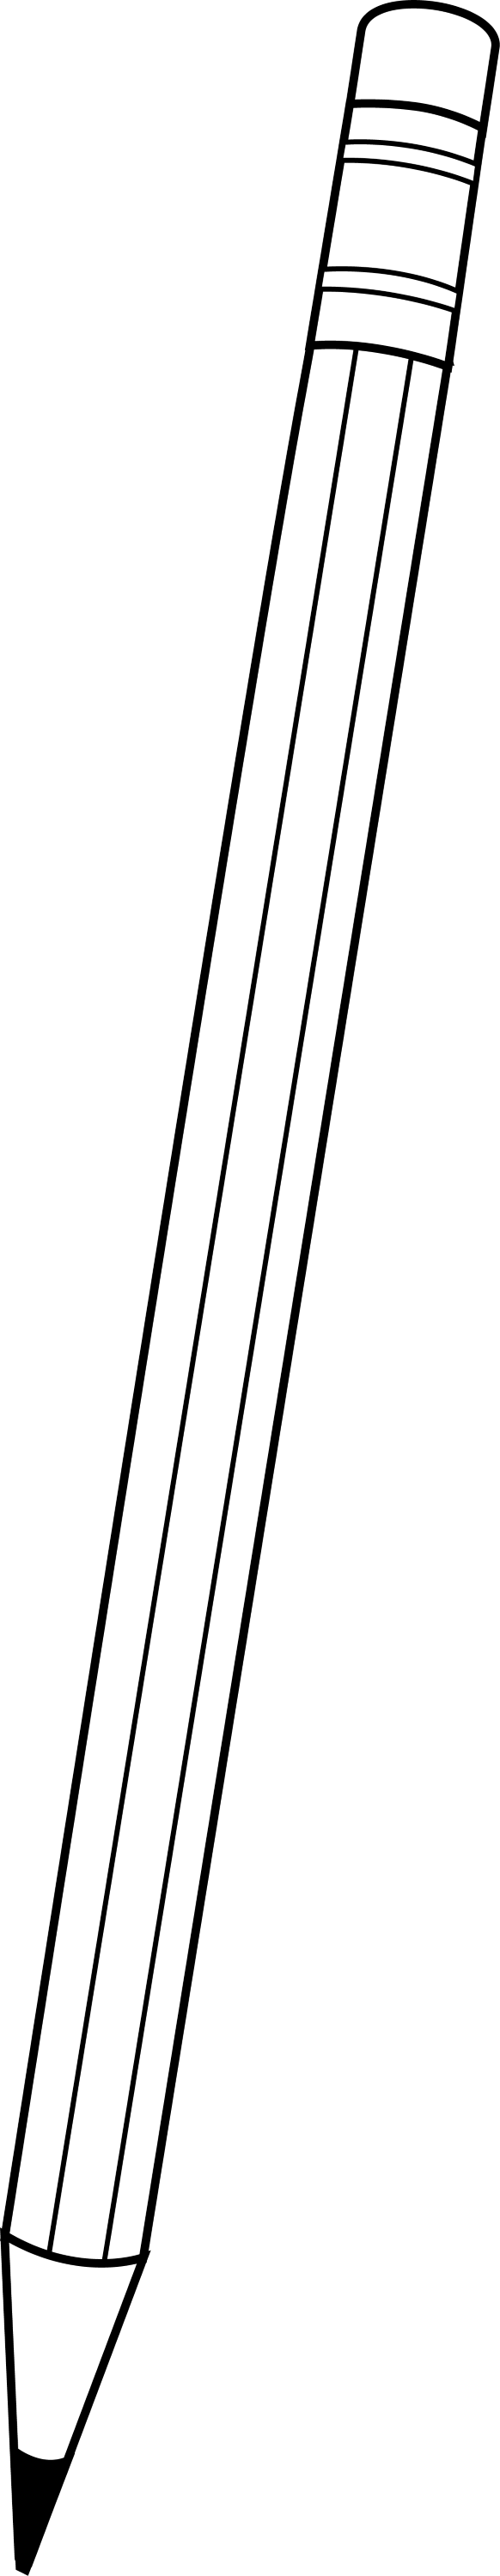 Simple pencil line art free clip art black and white pencil outline voltagebd Image collections